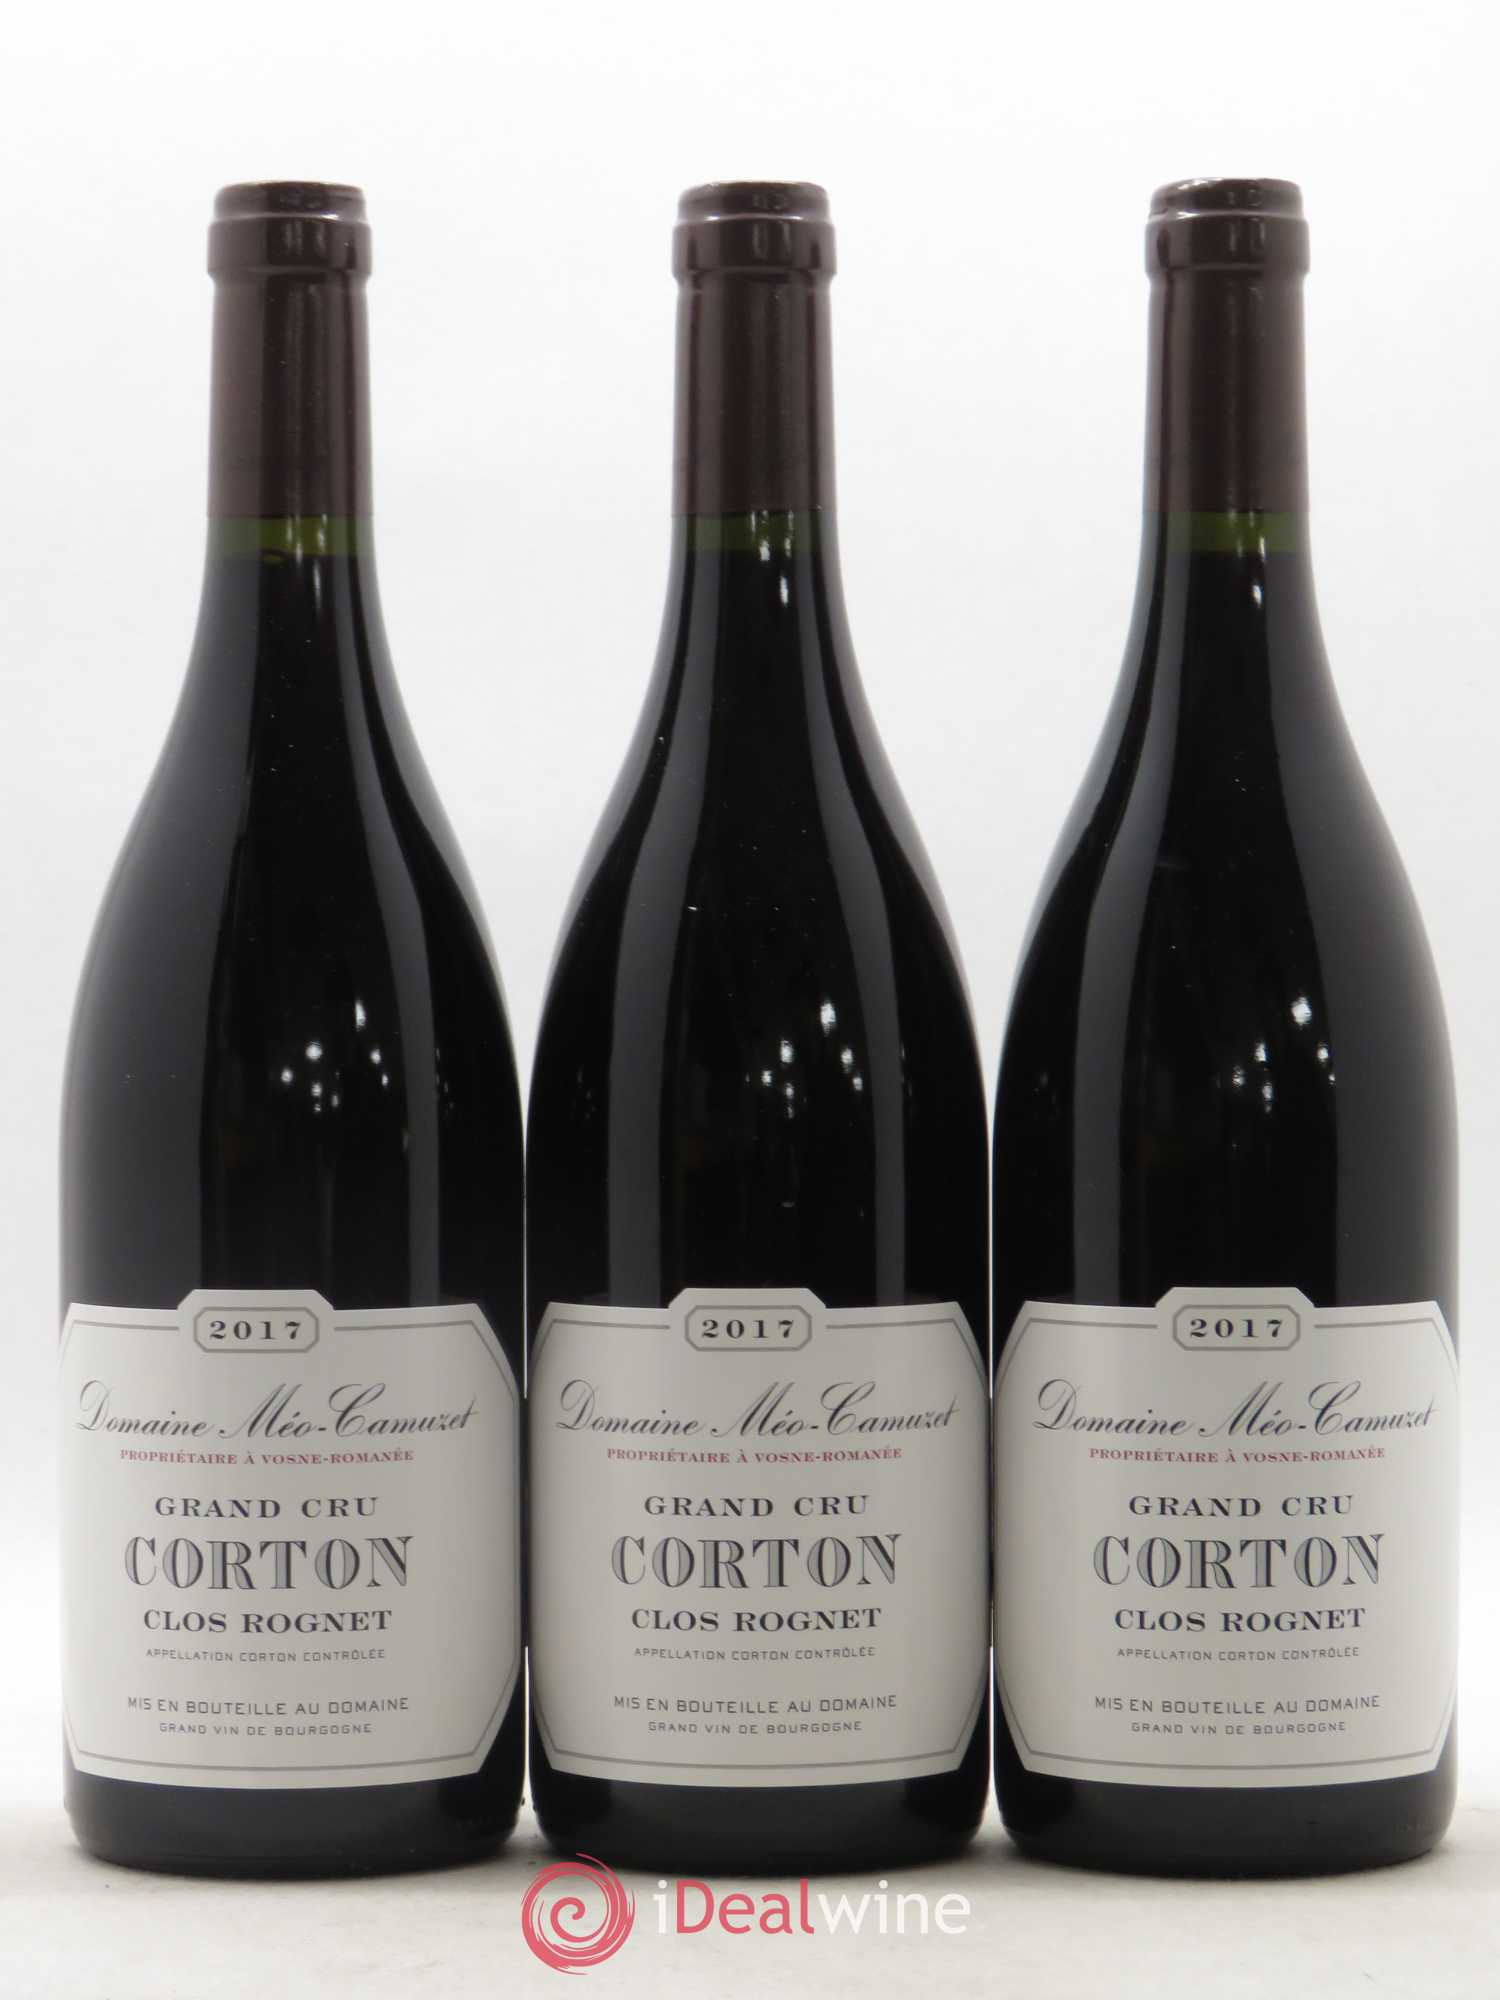 Corton Grand Cru Clos Rognet Méo-Camuzet (Domaine)  2017 - Lot of 3 Bottles